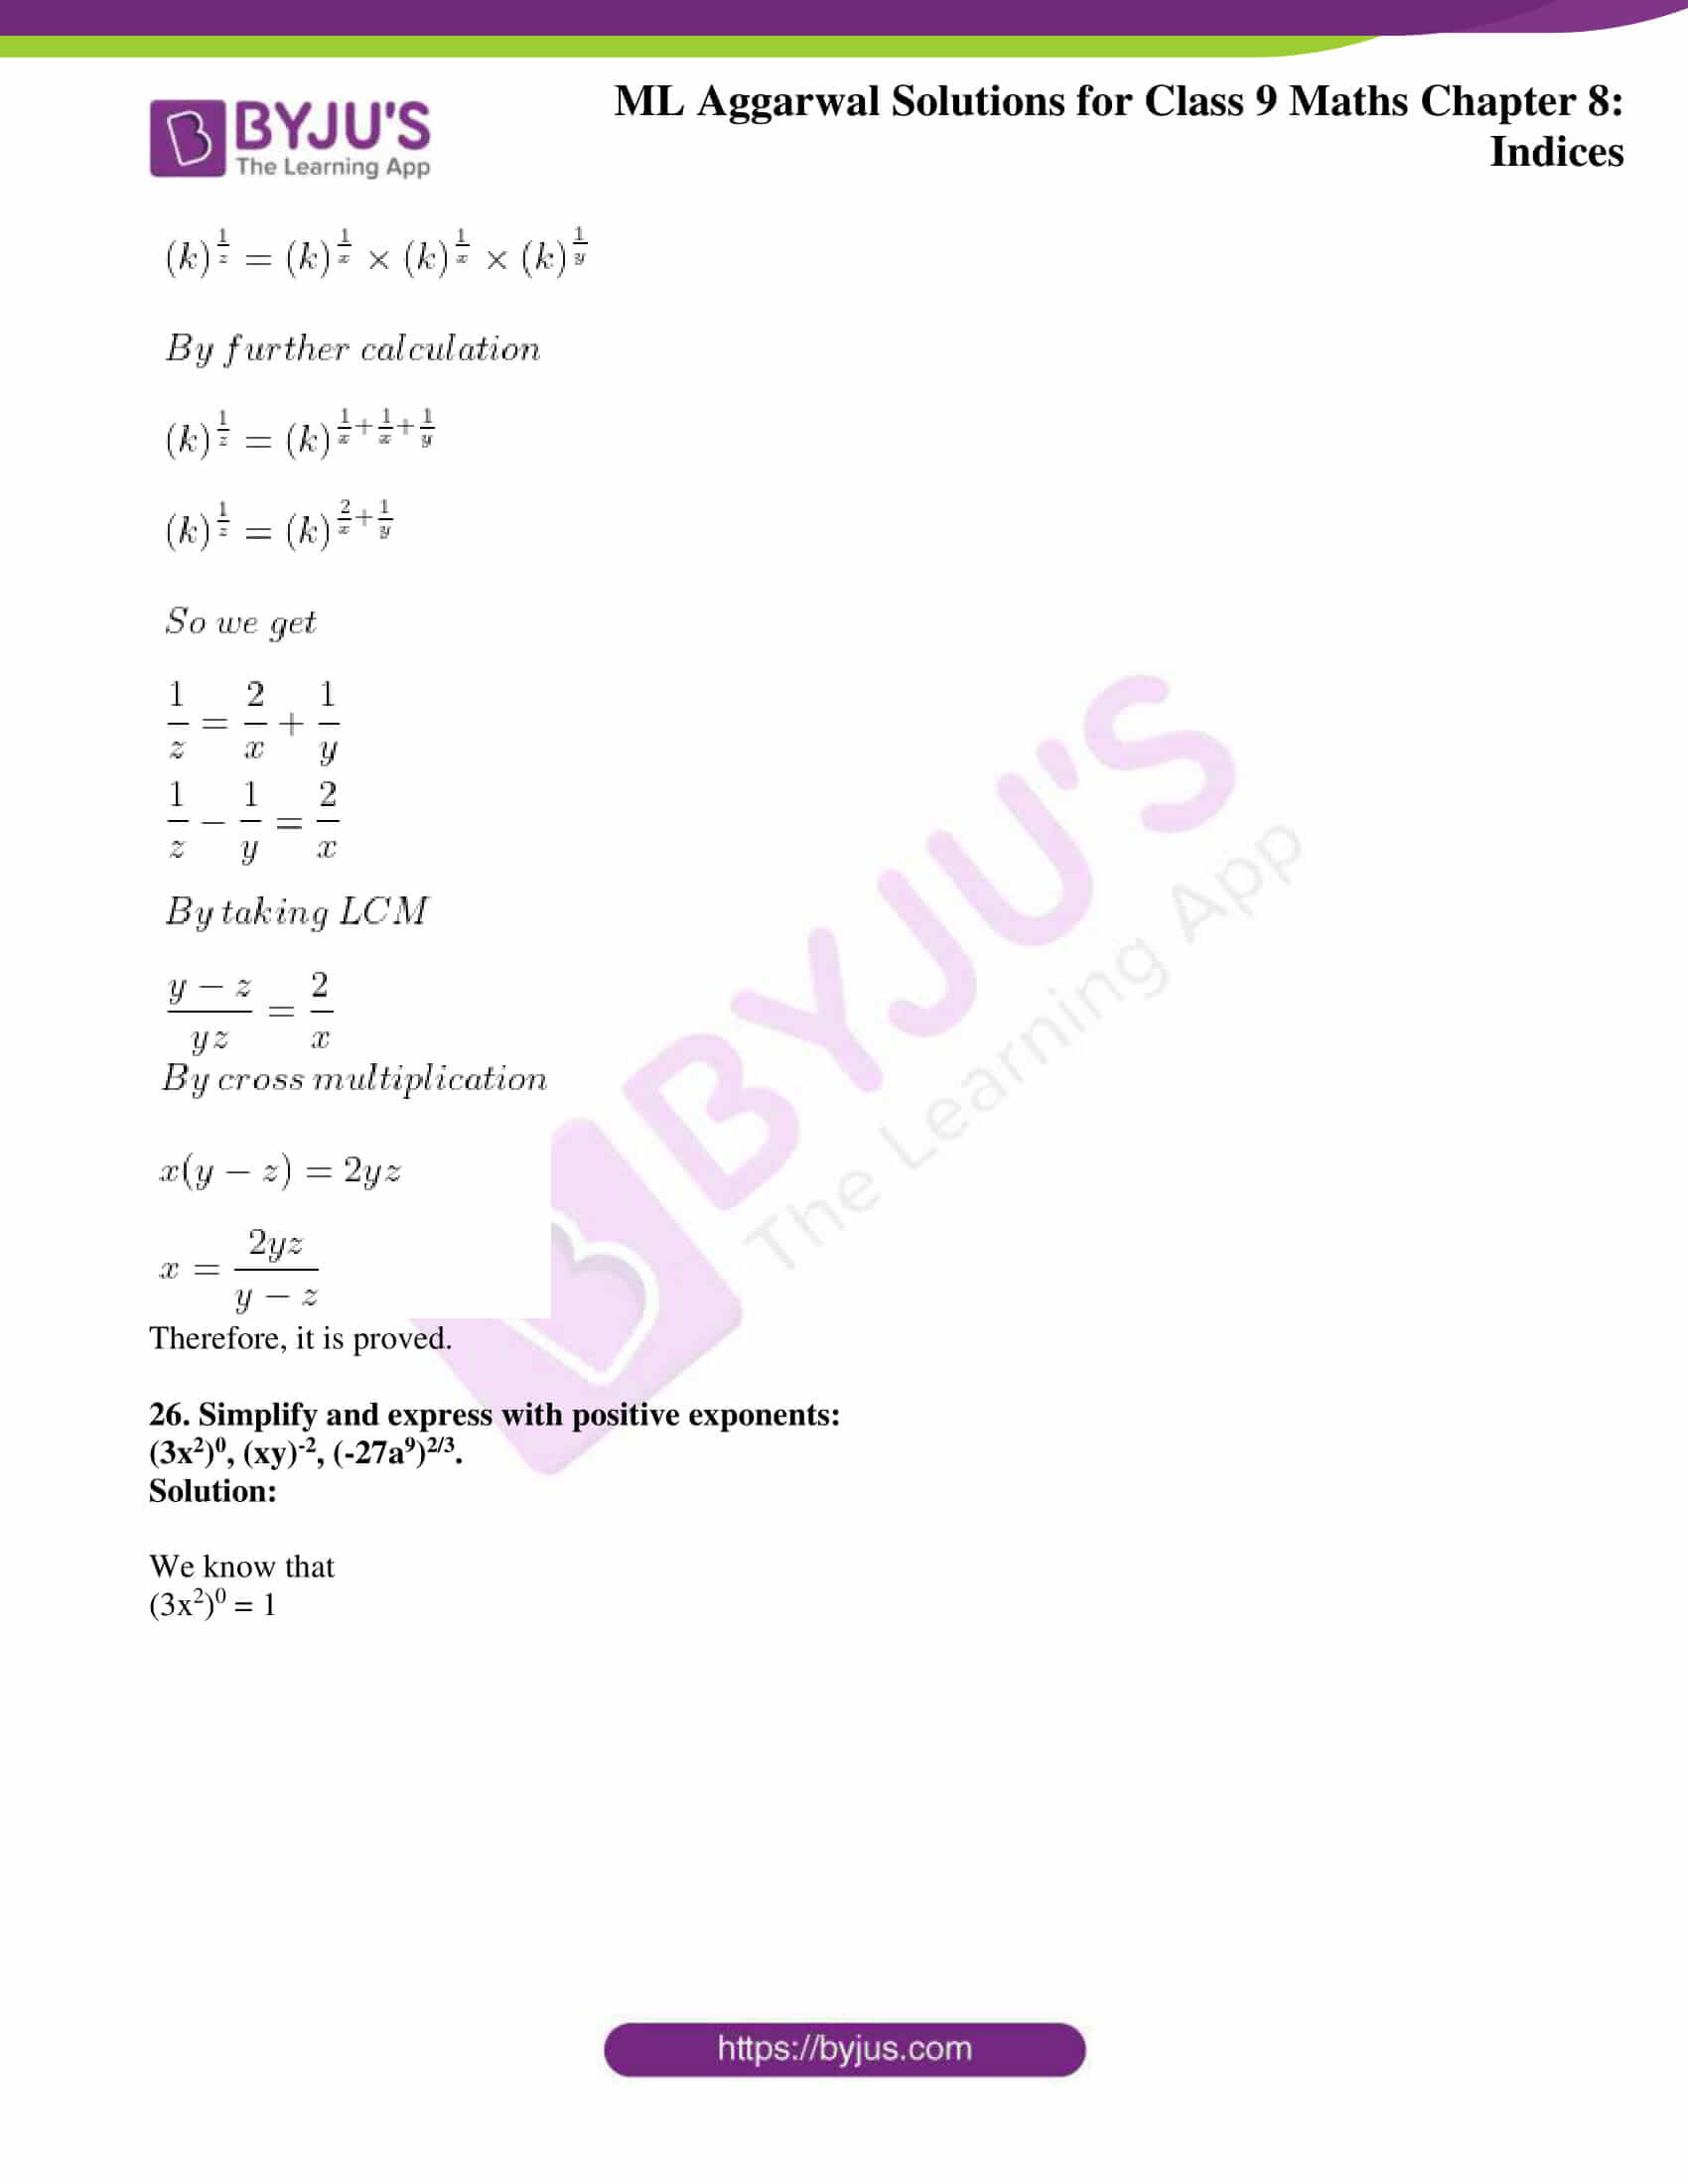 ml aggarwal solutions for class 9 maths chapter 8 28